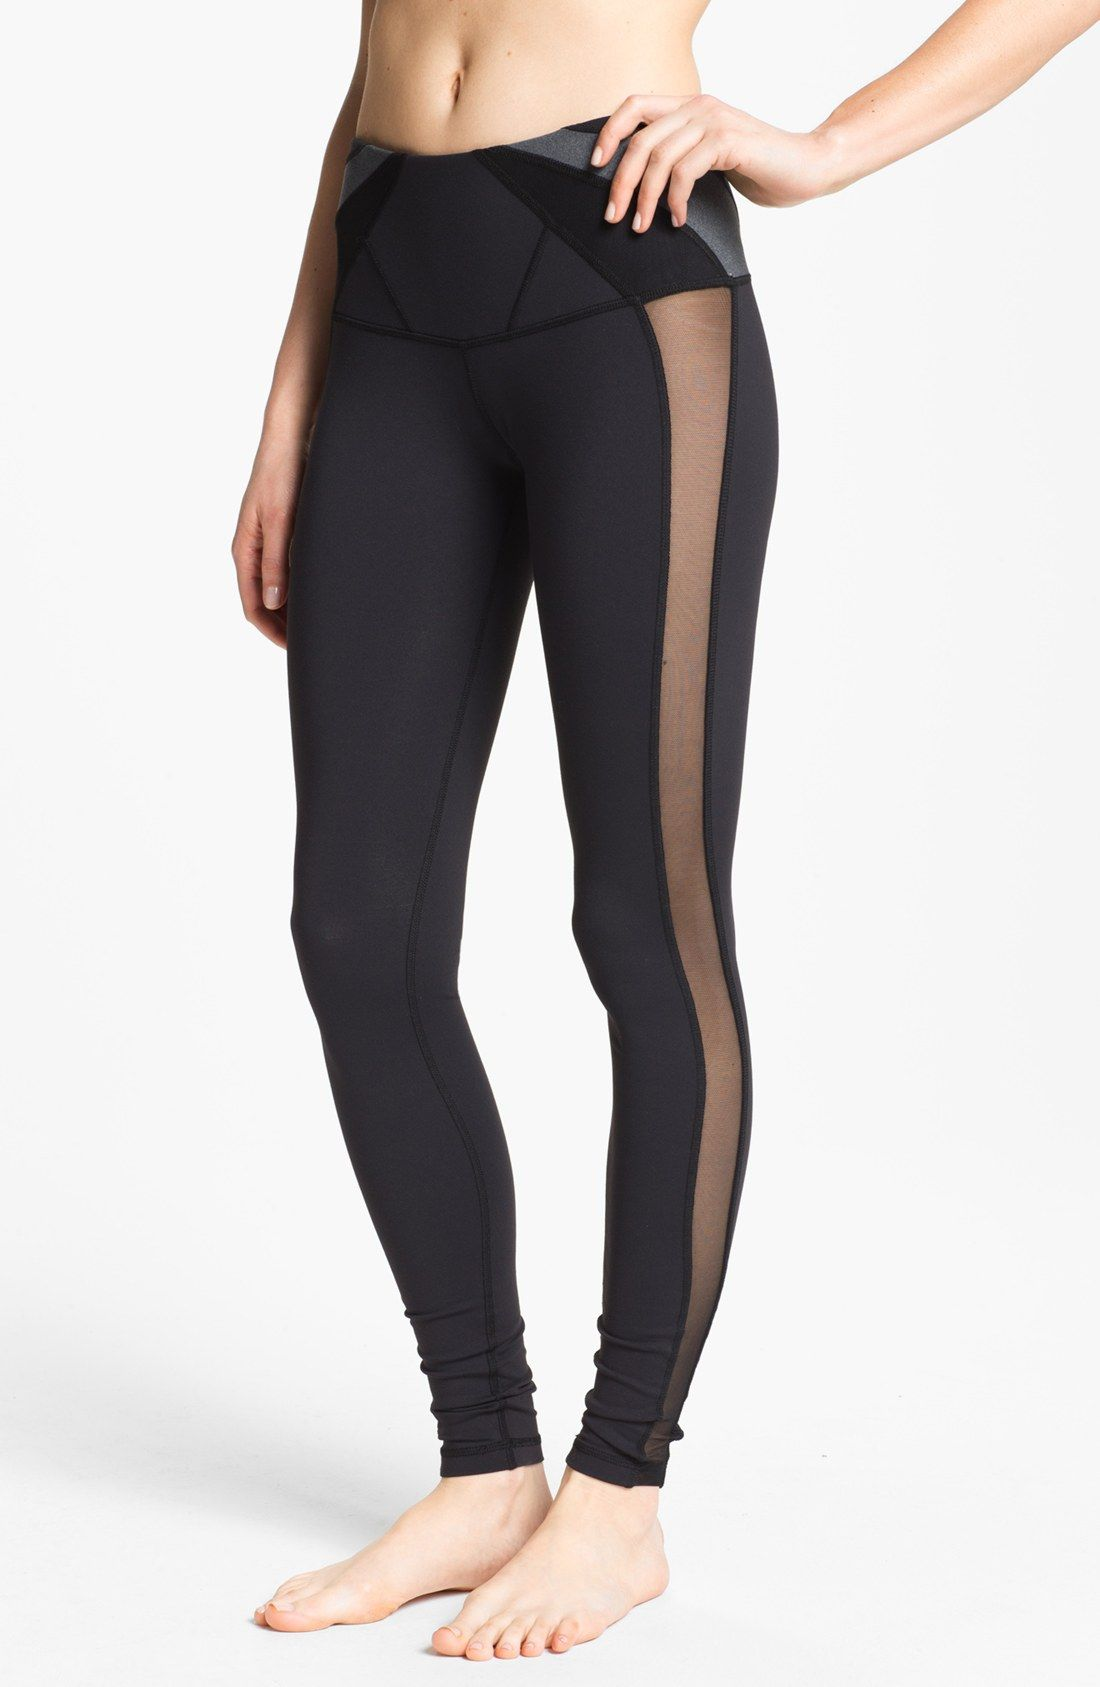 karma nellie yoga leggings w/mesh side panels | Fashion ...